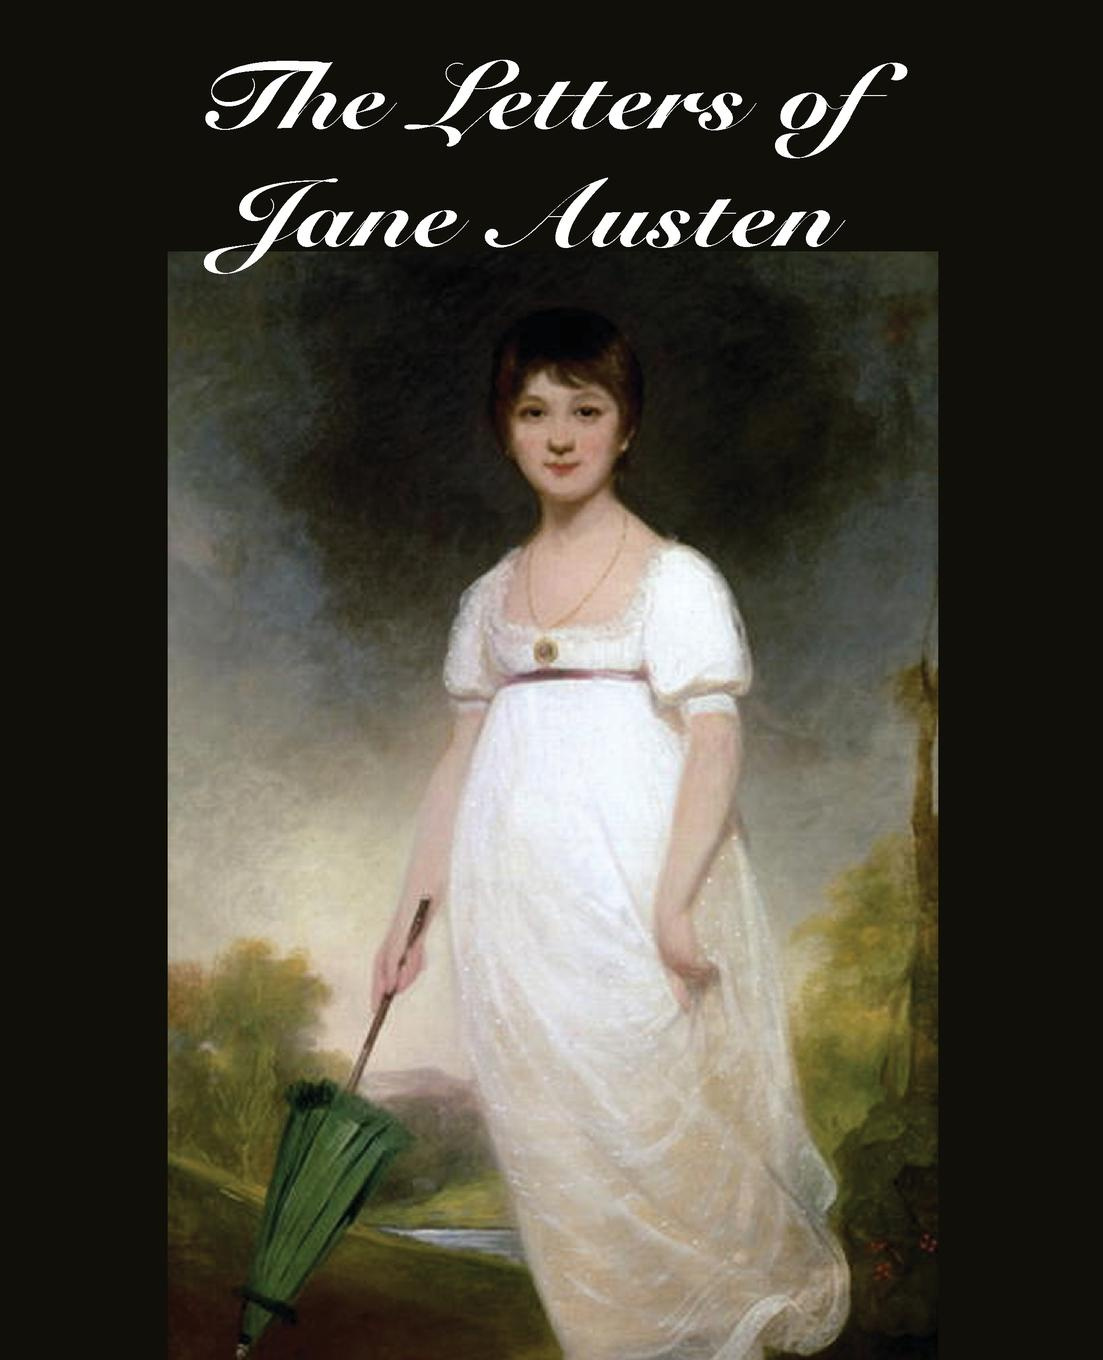 лучшая цена Jane Austen The Letters of Jane Austen